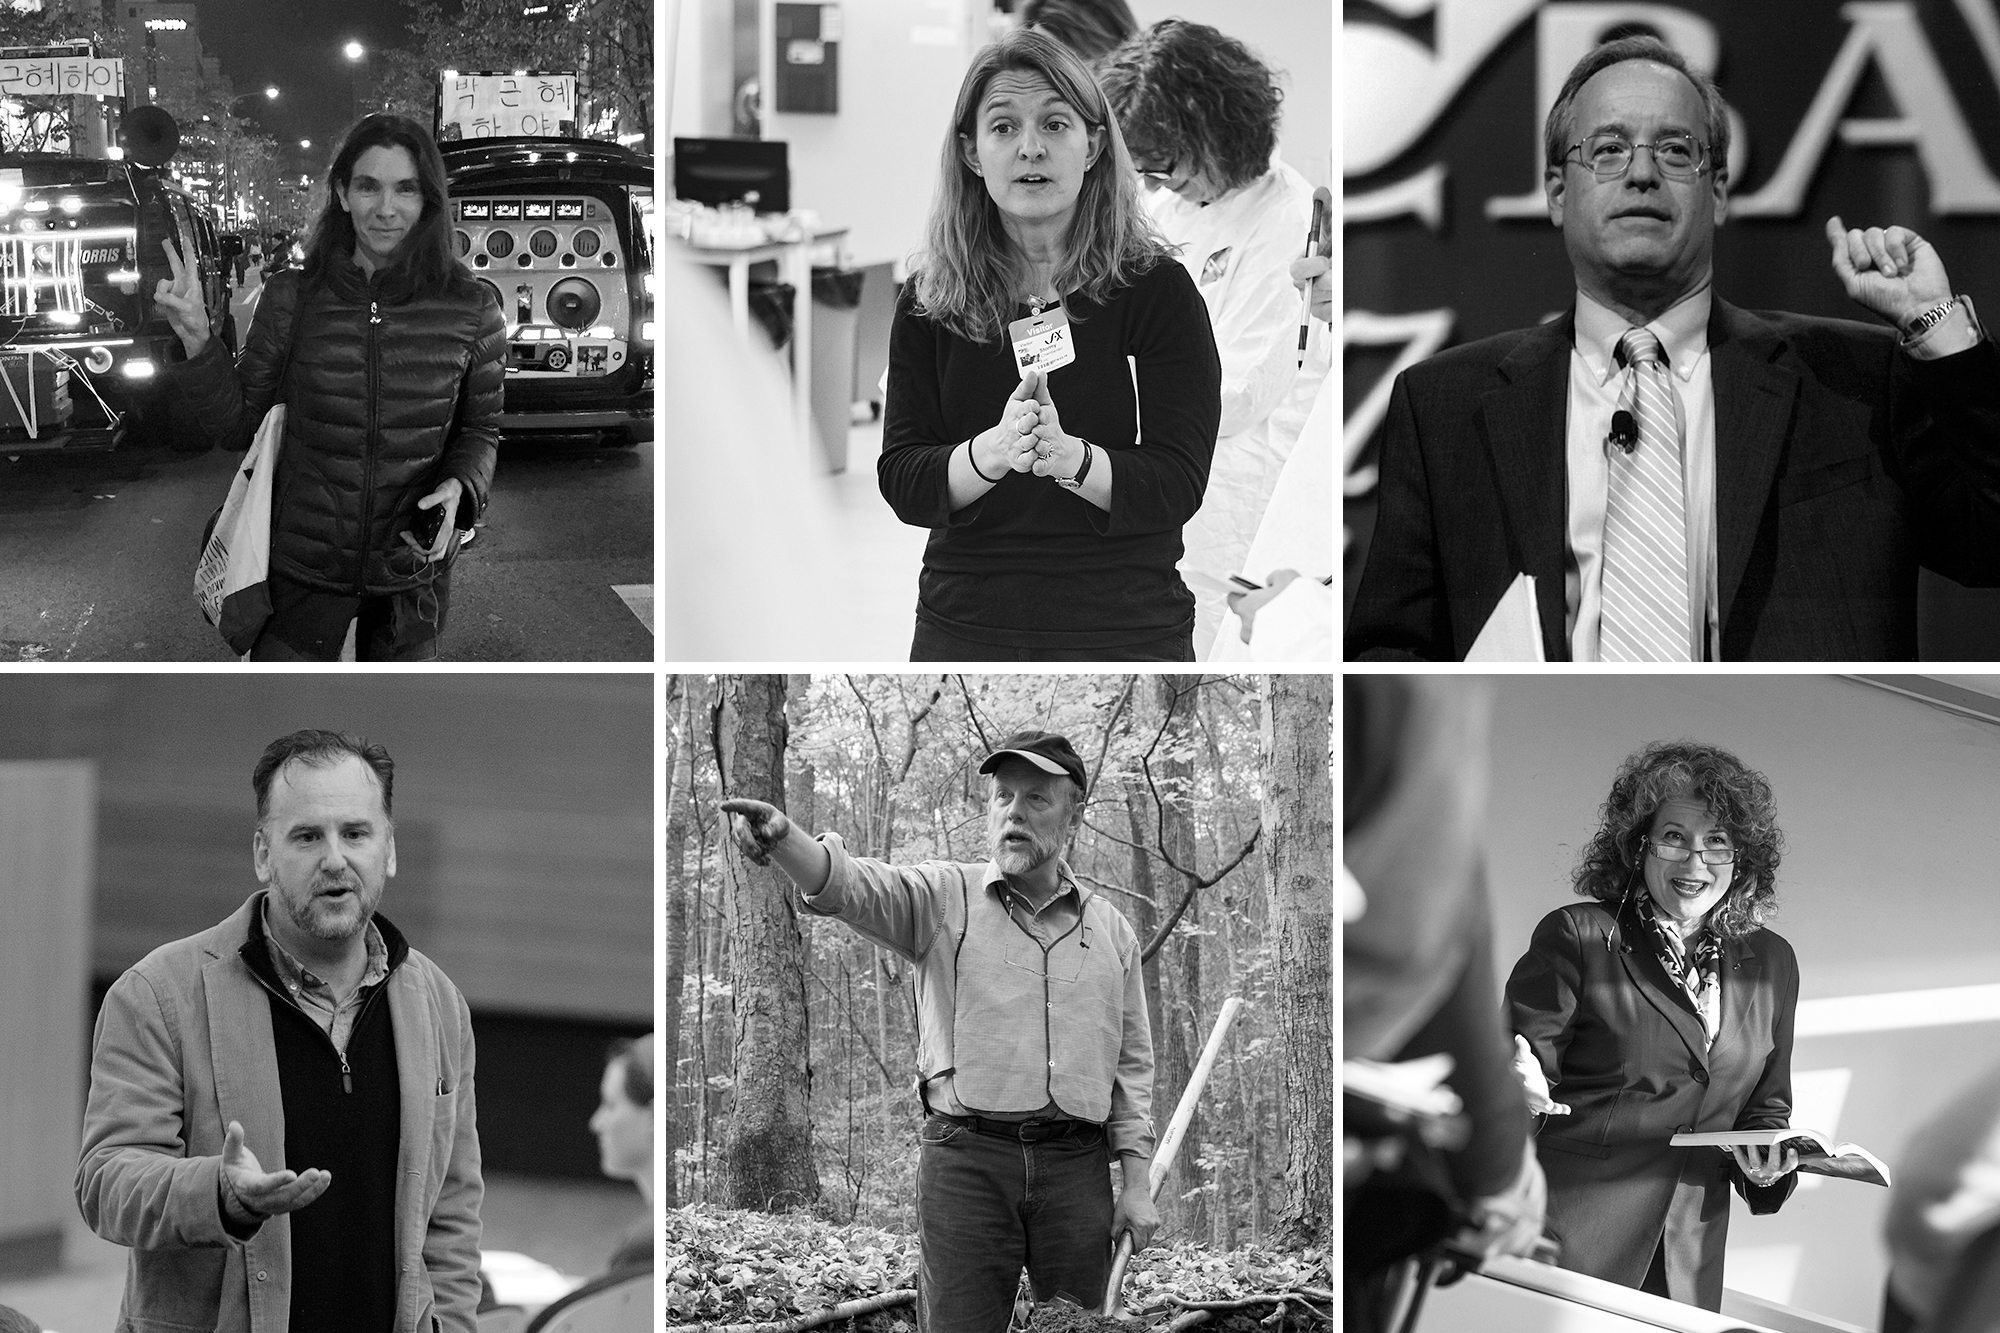 With just a few days left in 2016, a selection of faculty, staff, students, and alumni share hopes for next year.